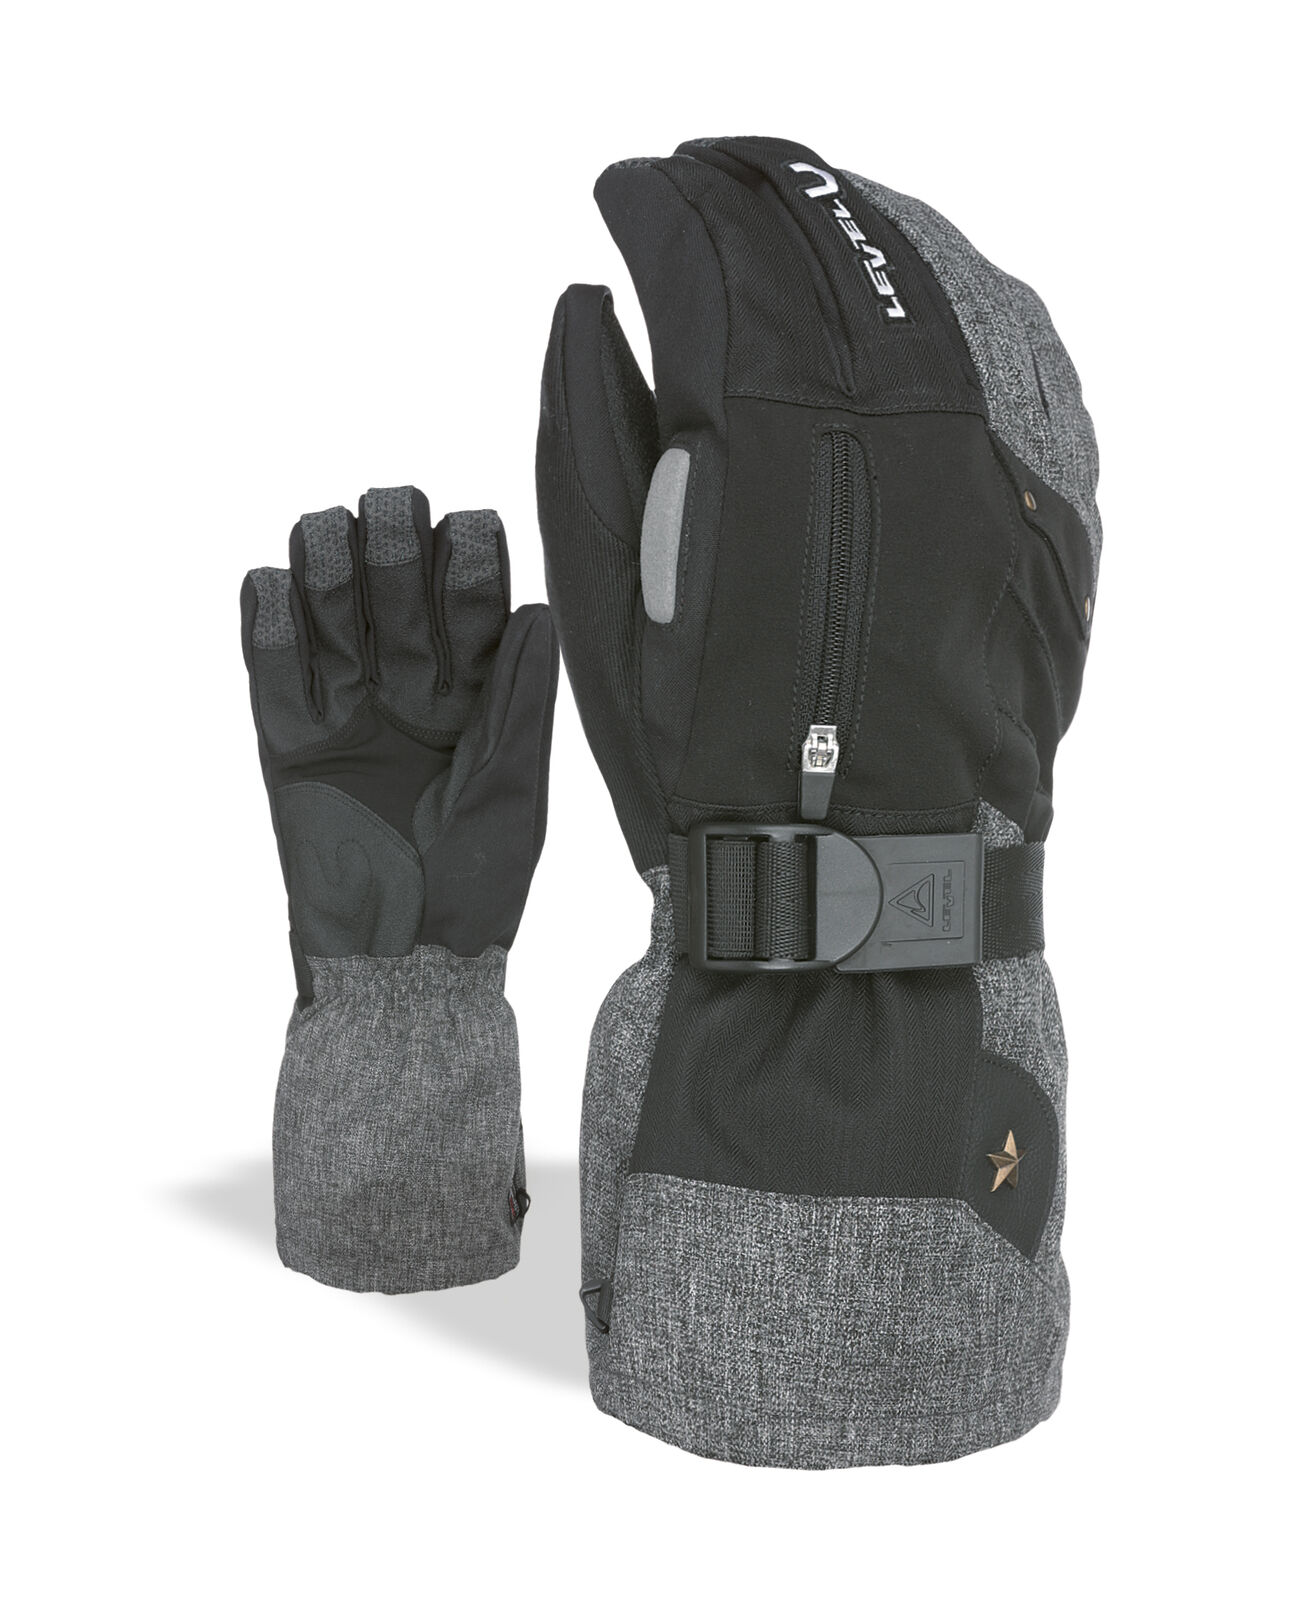 Level Guantes Star black Impermeable Transpirable